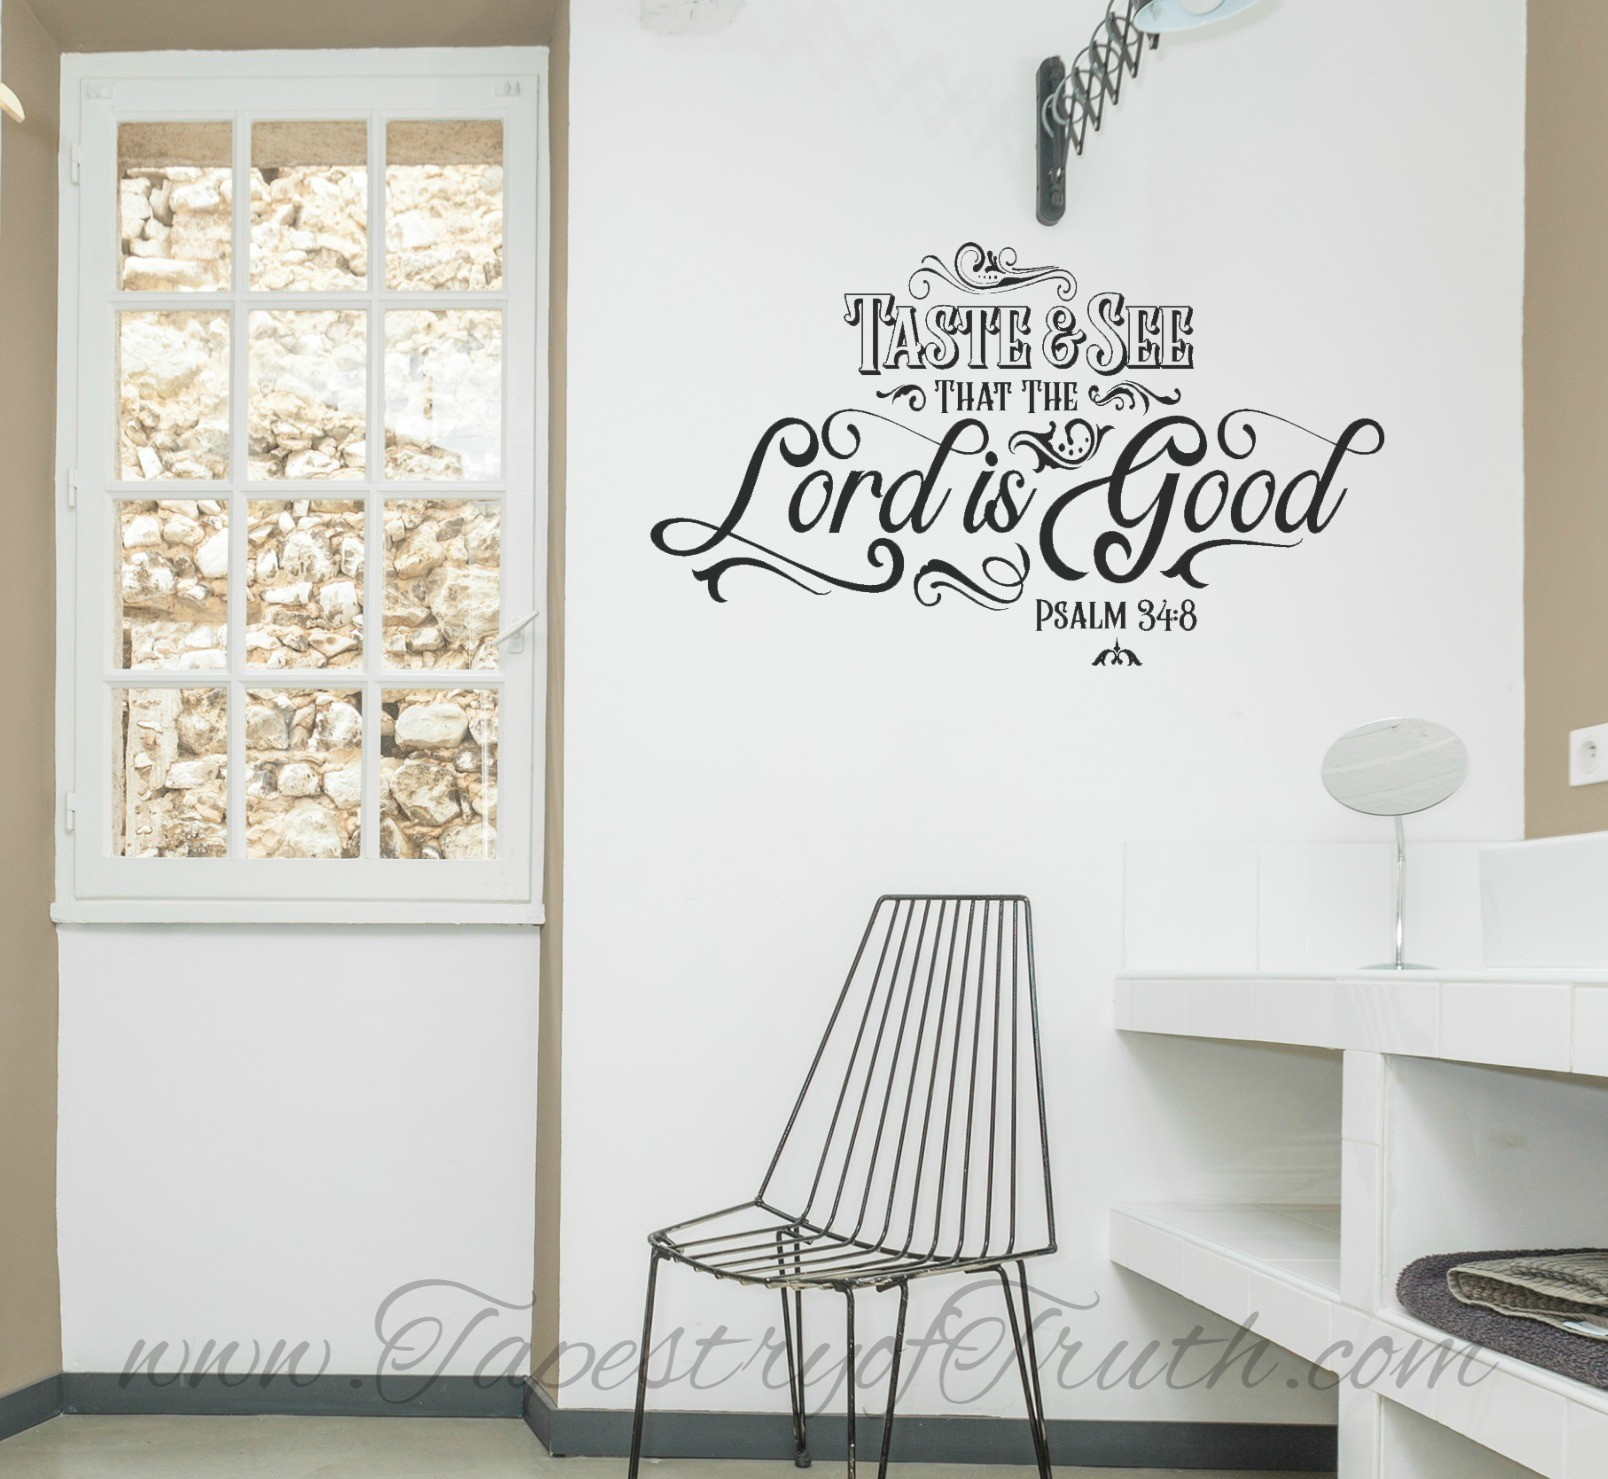 Taste and see that the Lord is good. Psalm 34:8